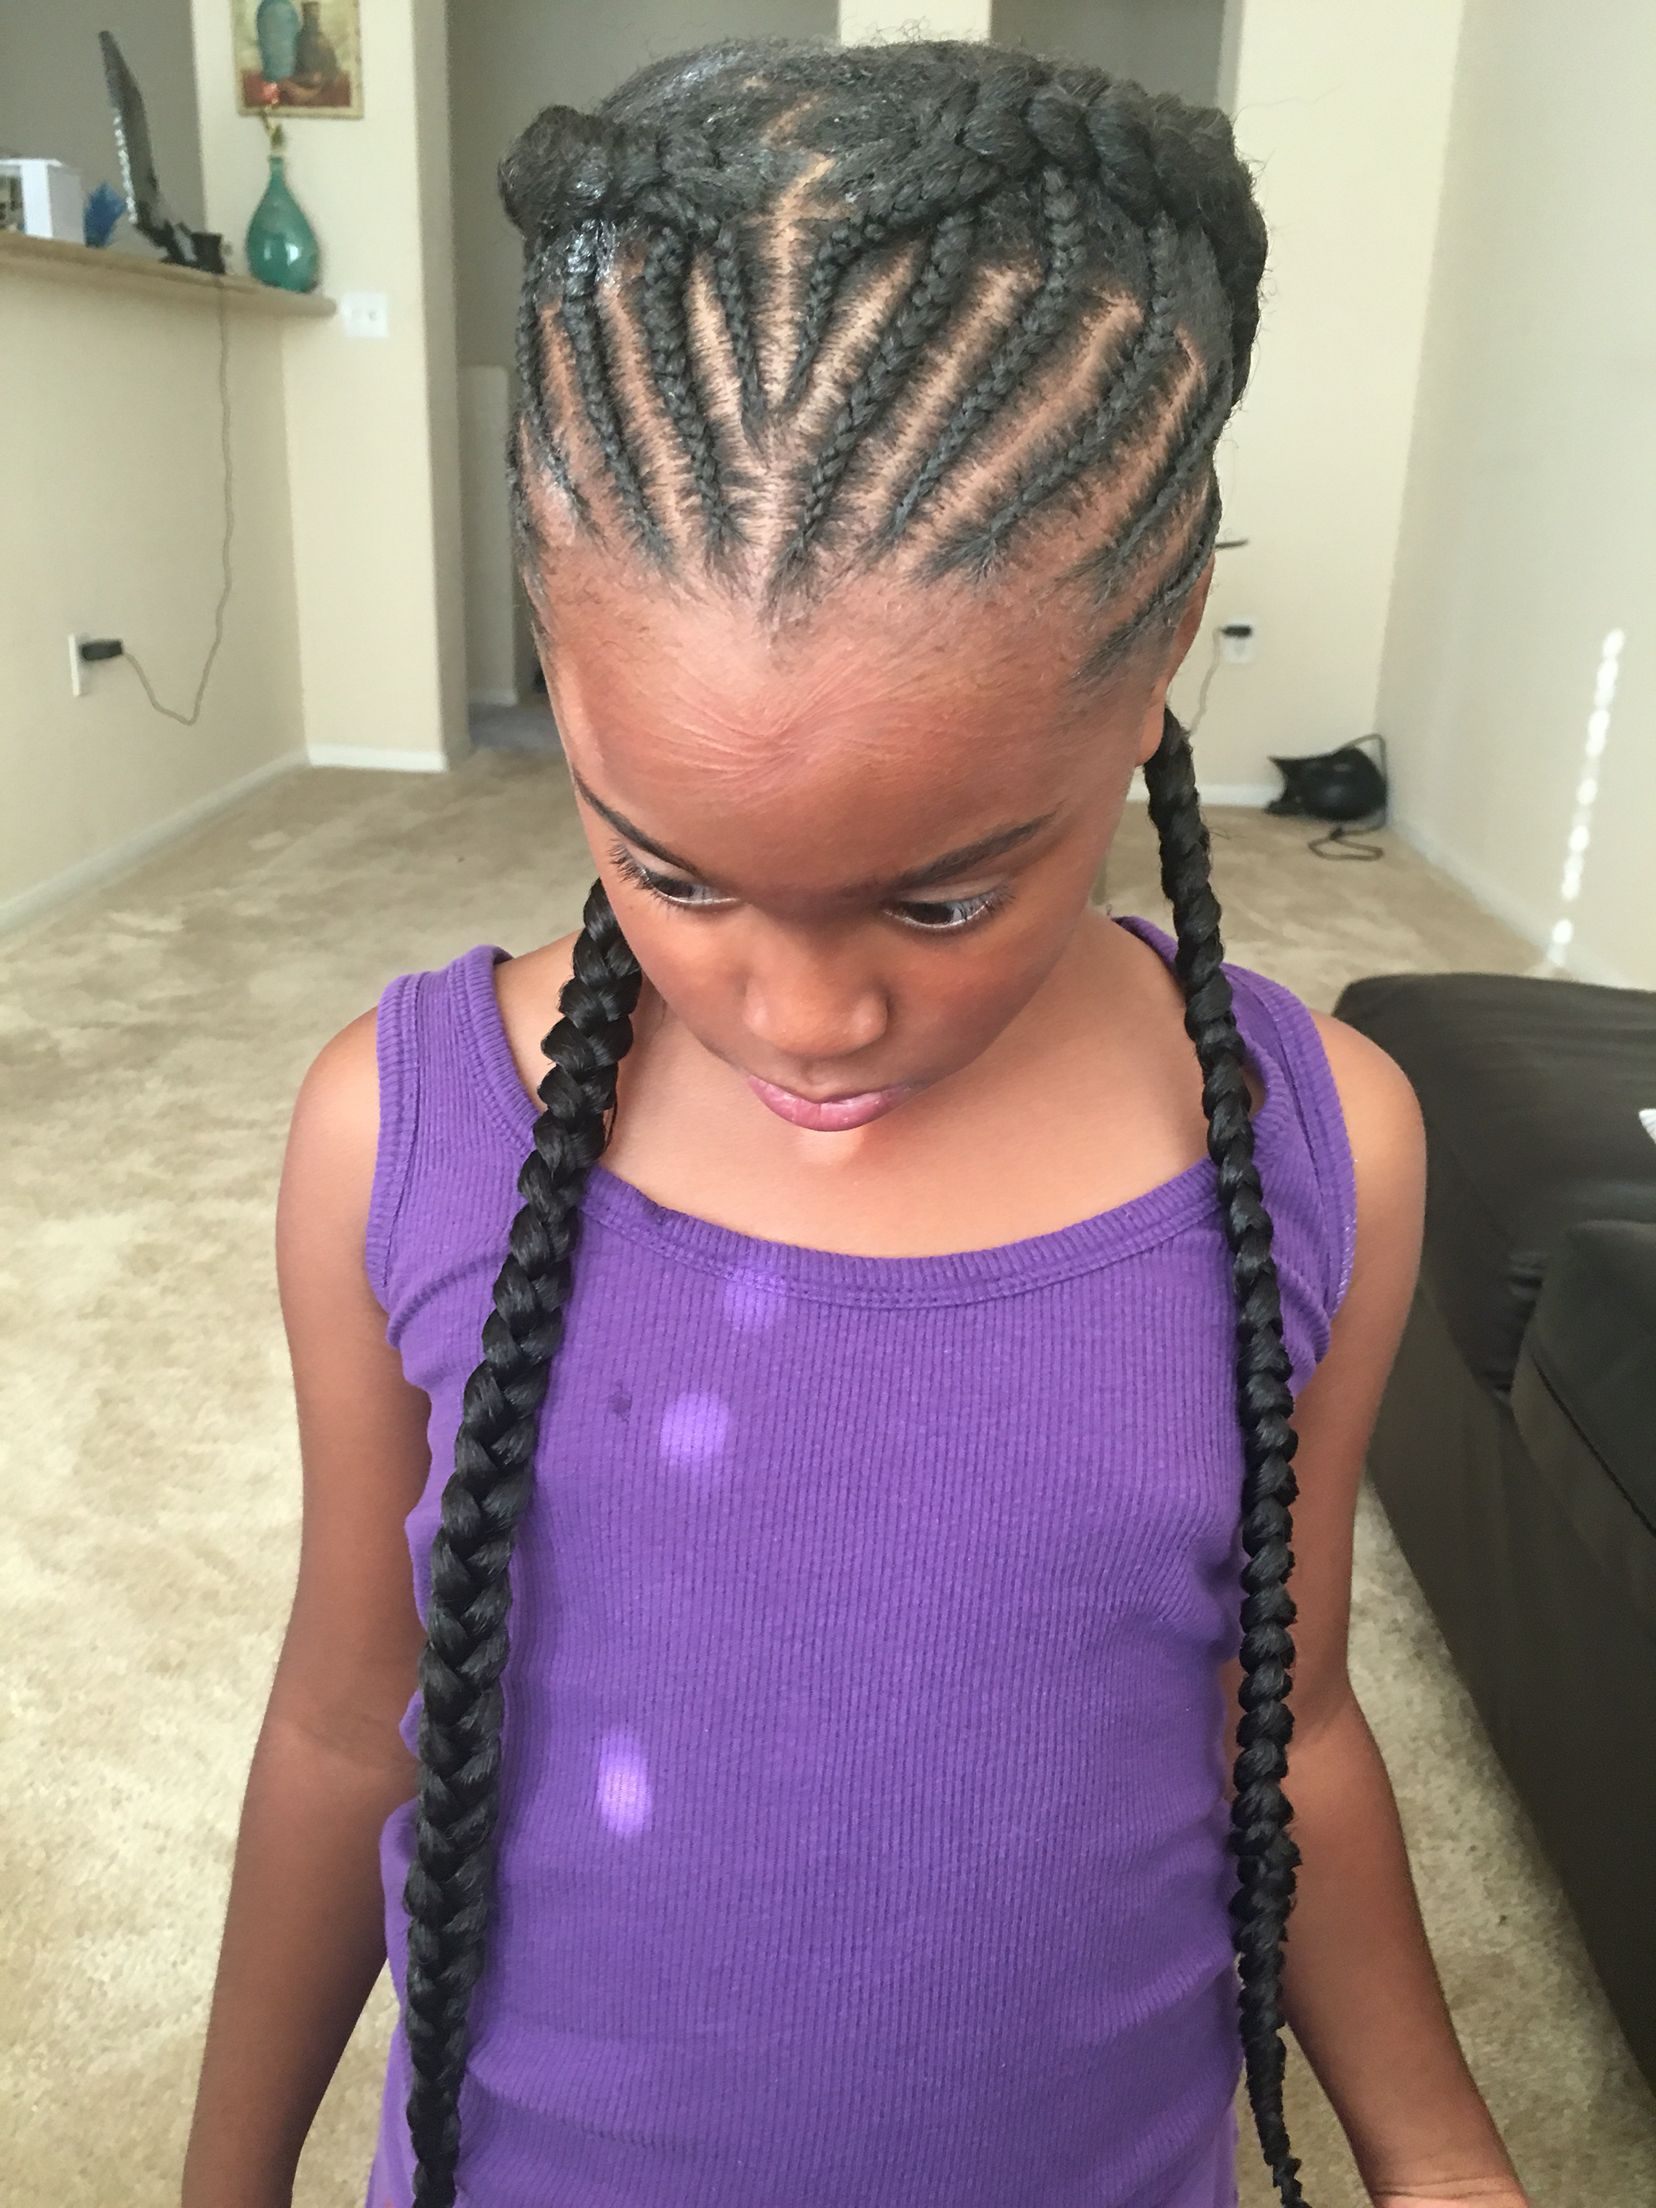 2bb256c694b Goddess braids, half braided, Halo, beehive, black girl hair, cornrows,  designs, little girl hairstyles, French braids, corn rolls, natural hair,  ...